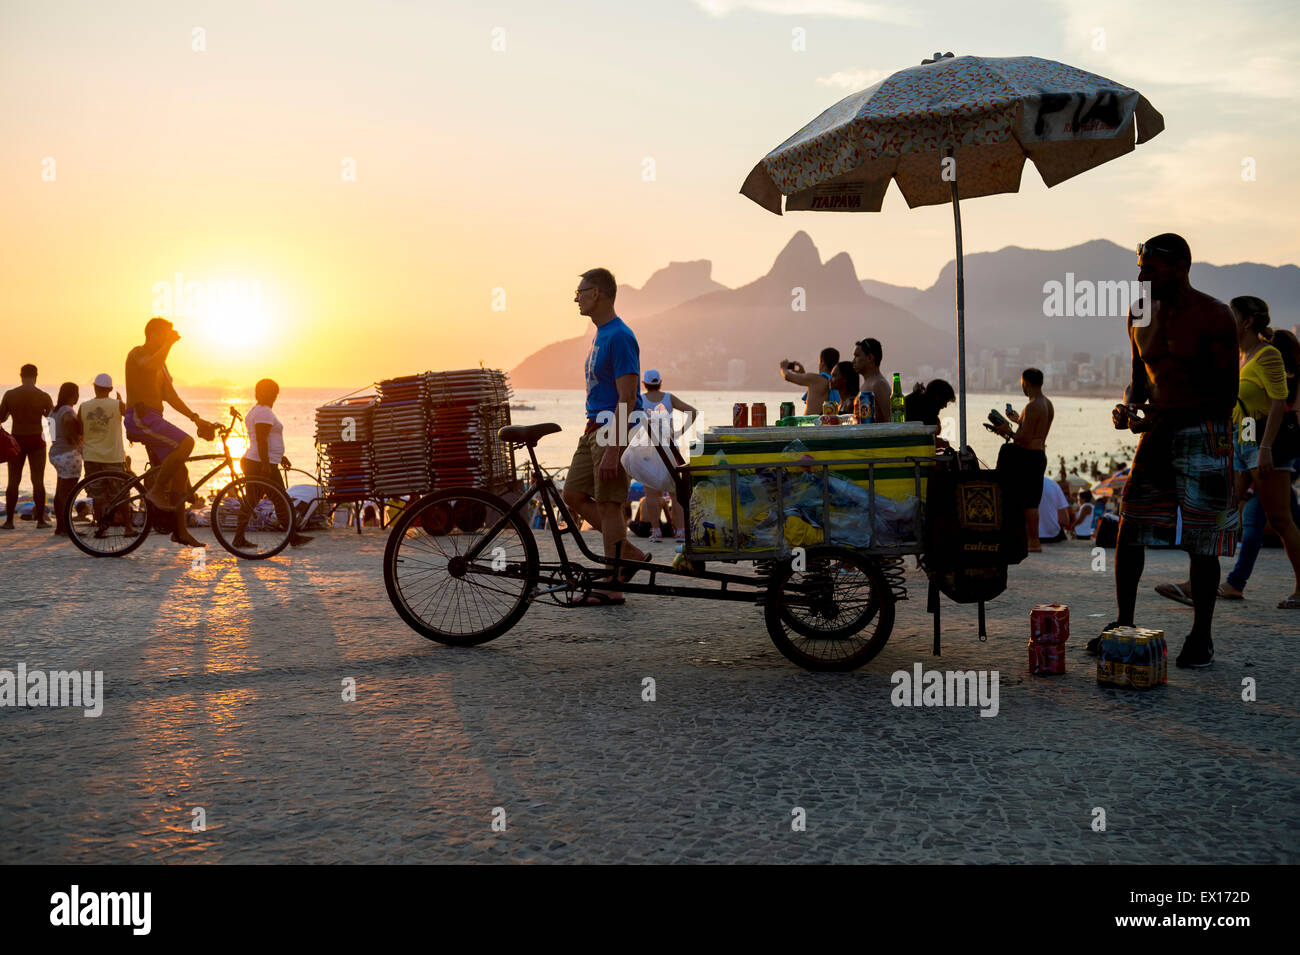 RIO DE JANEIRO, BRAZIL - FEBRUARY 21, 2015: Vendors and tourists gather at Arpoador for the daily sunset watching - Stock Image